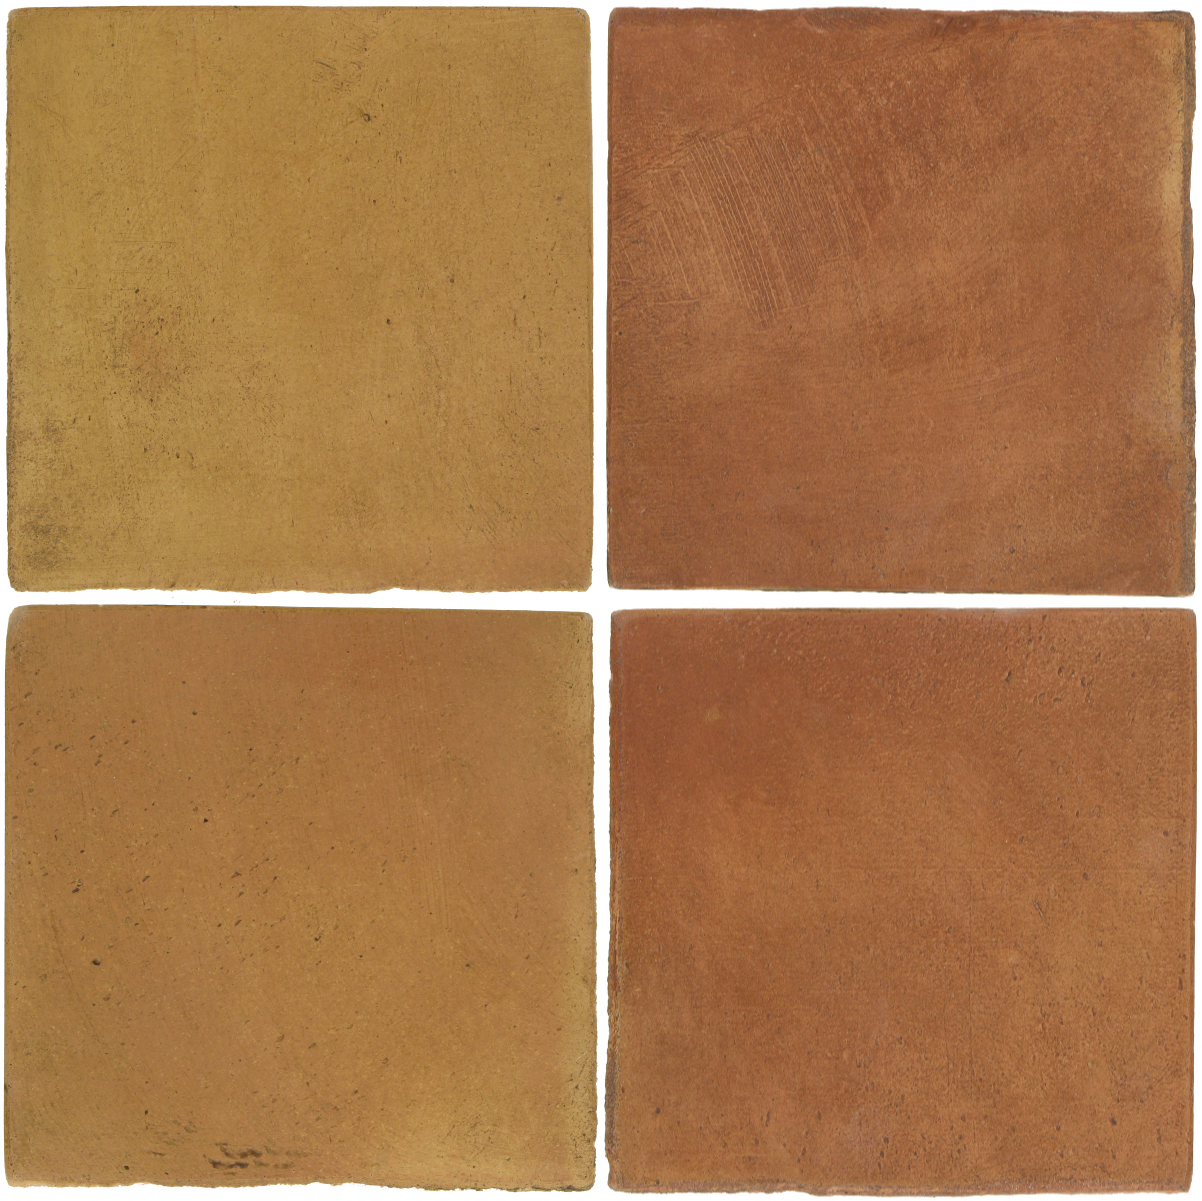 Pedralbes Antique Terracotta  2 Color Combinations  OHS-PSSW Siena Wheat + OHS-PSTR Traditional